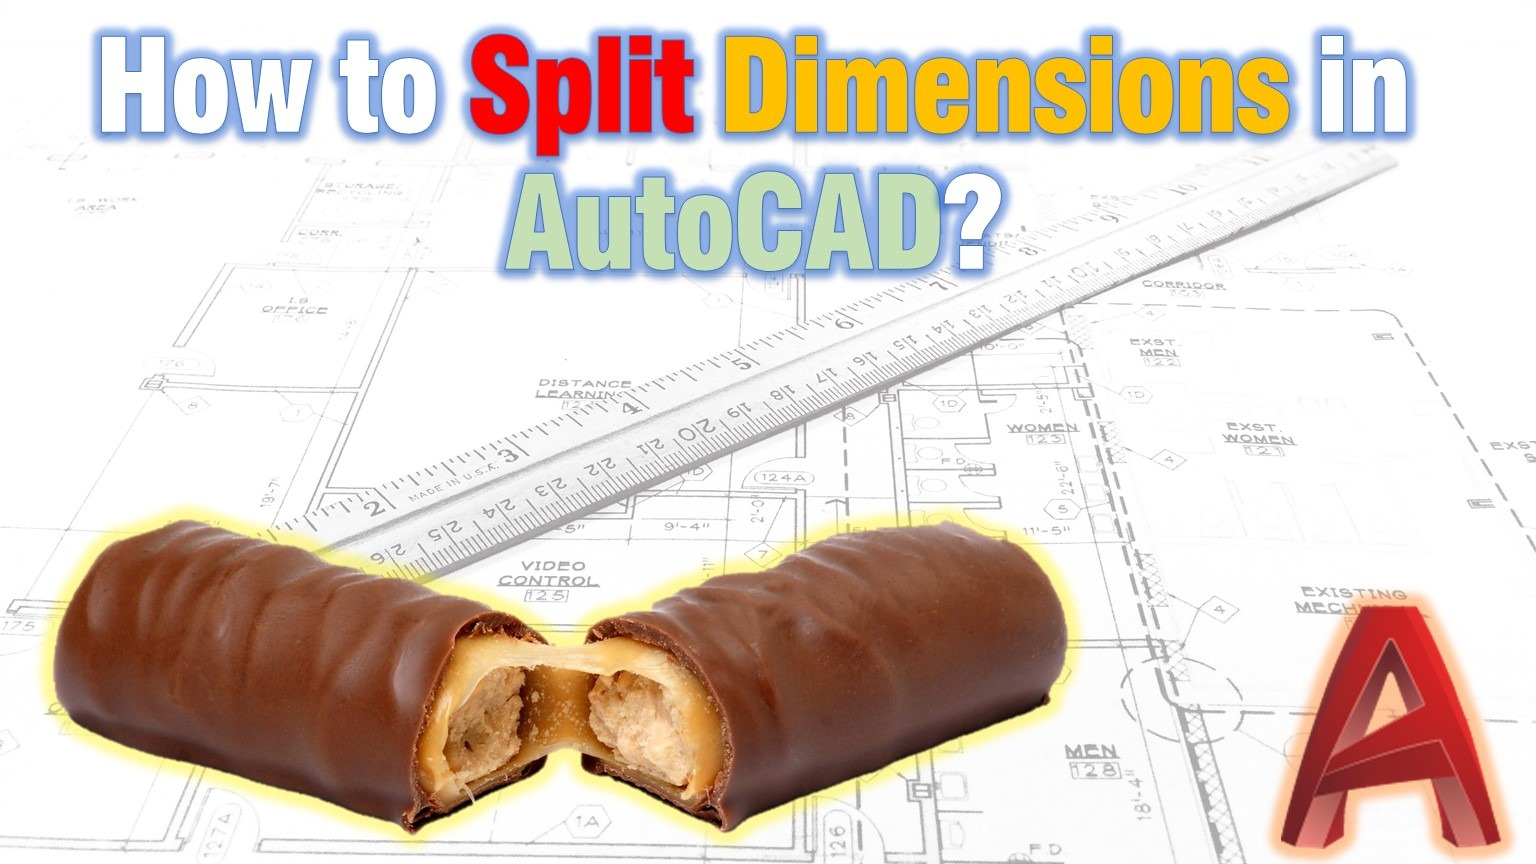 Learn how to split dimensions in AutoCAD